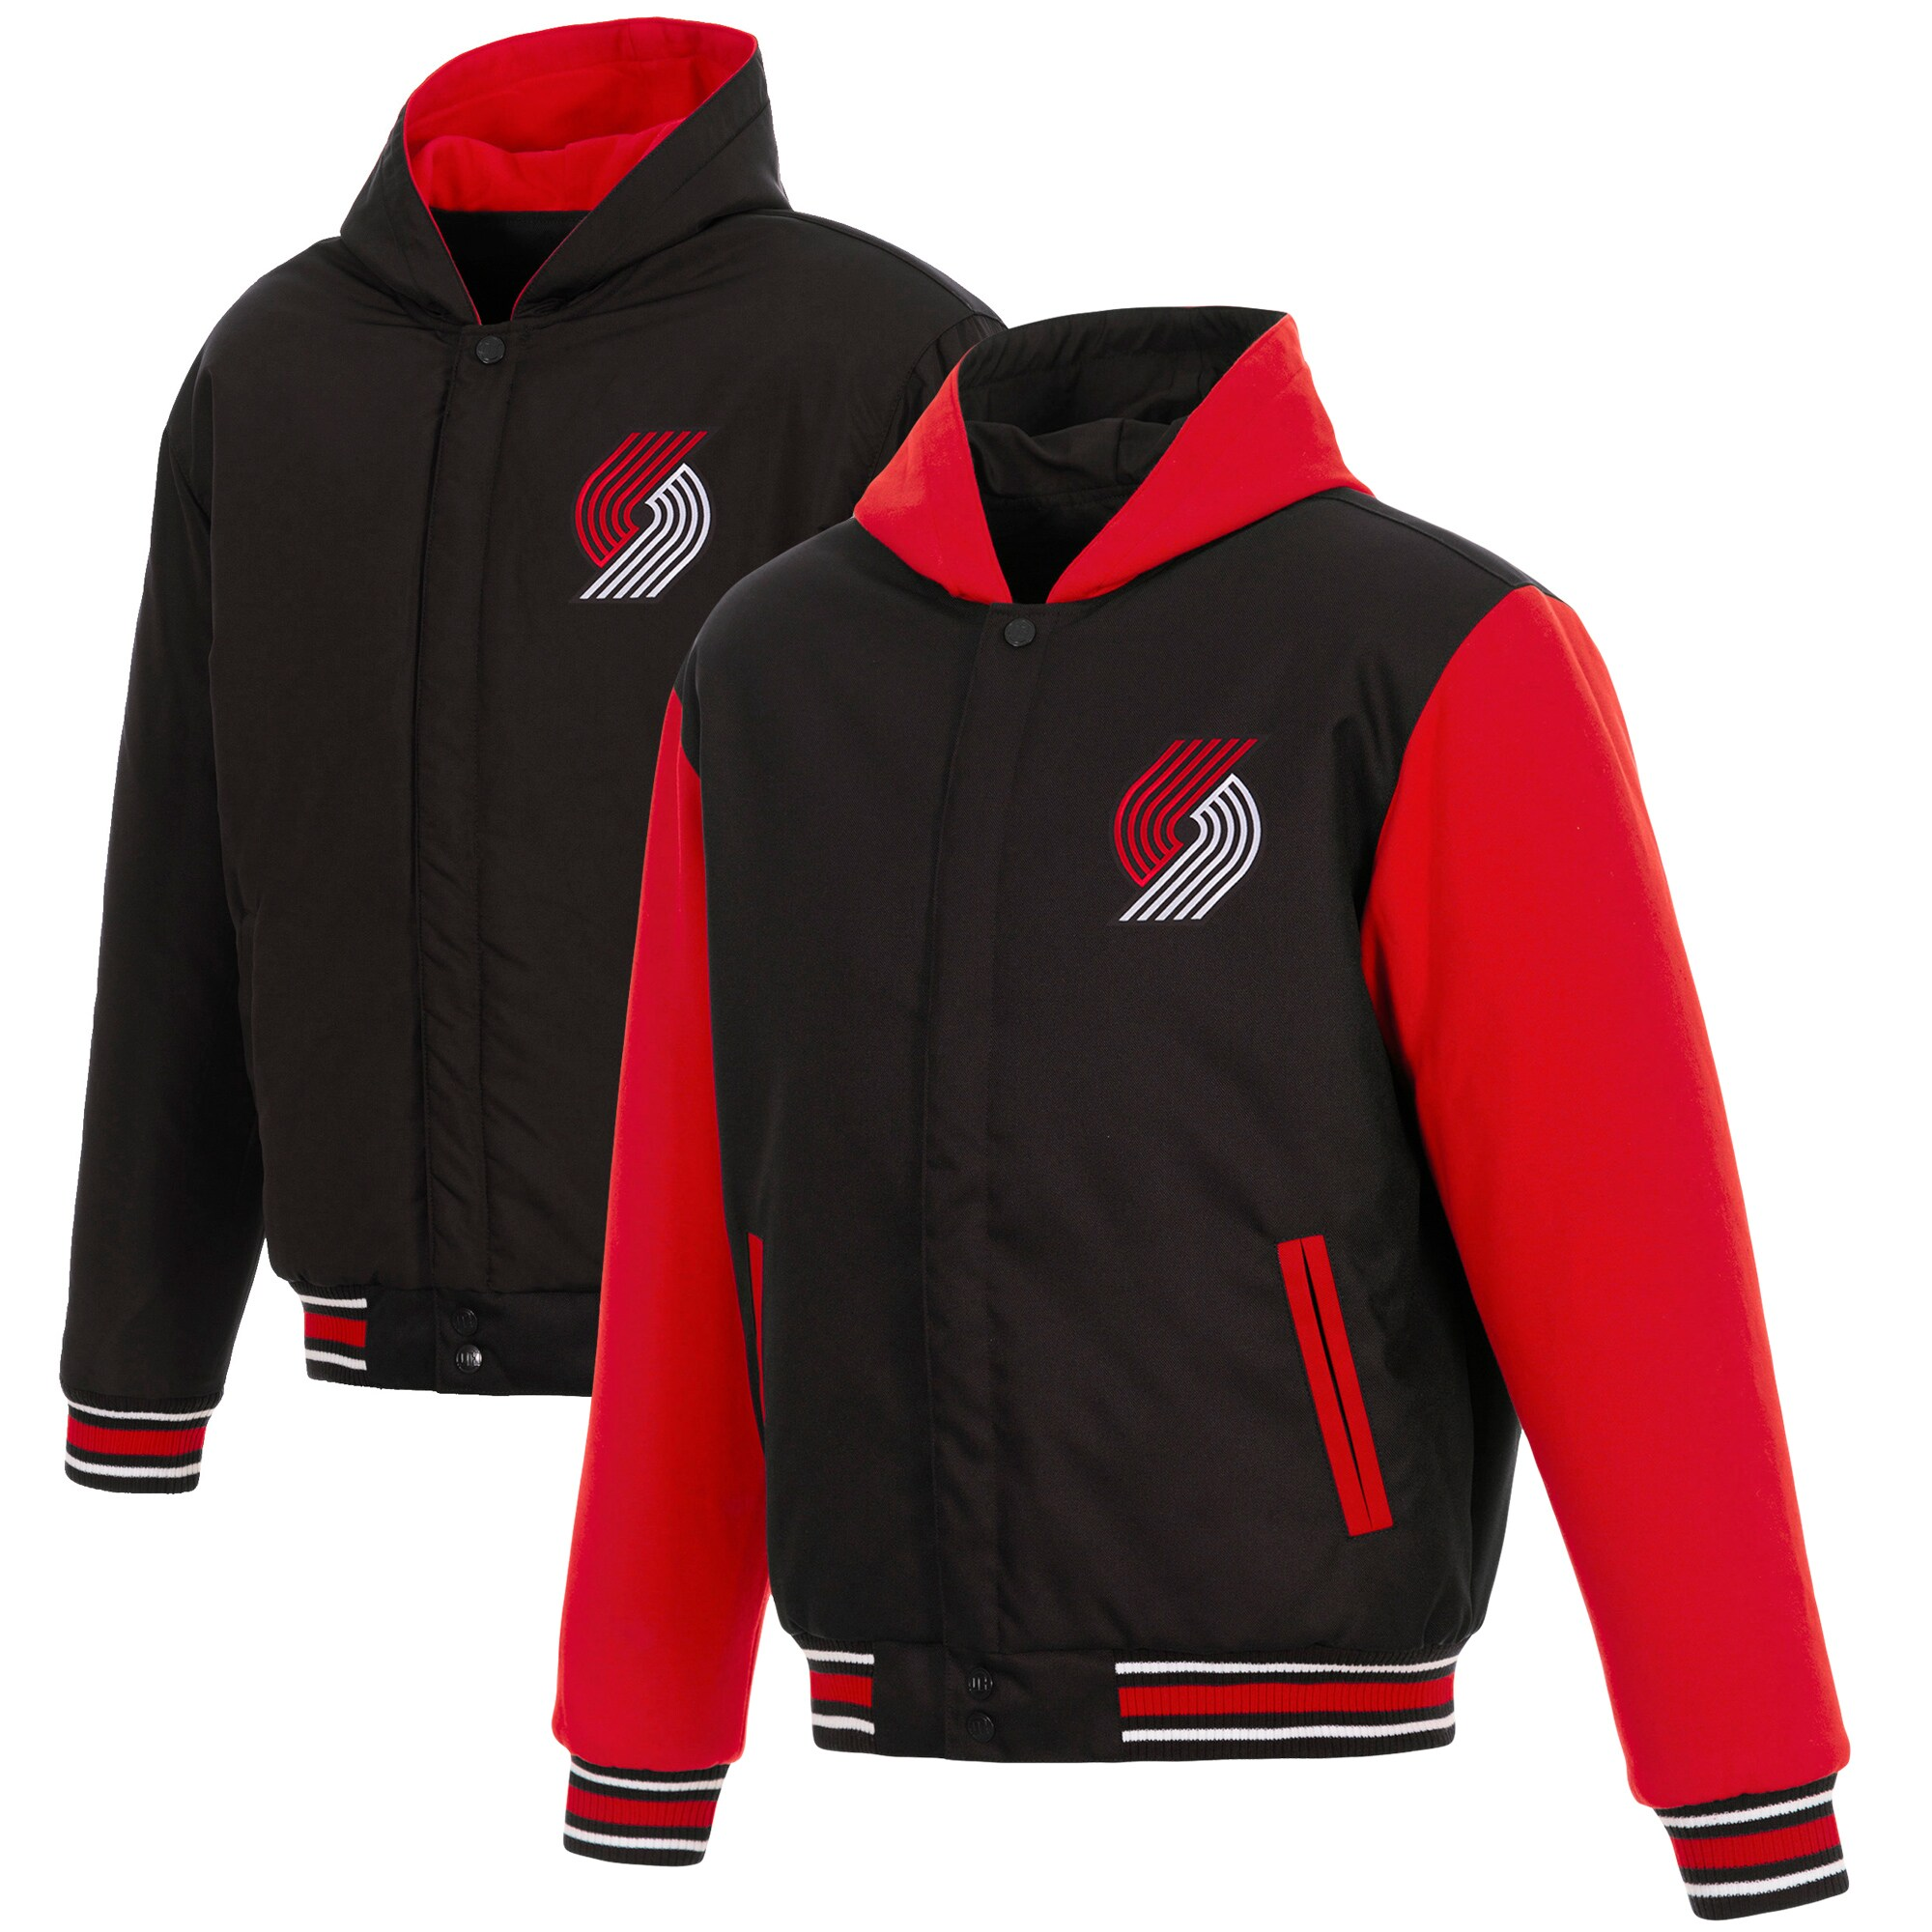 Portland Trail Blazers JH Design Reversible Poly-Twill Hooded Jacket with Fleece Sleeves - Black/Red